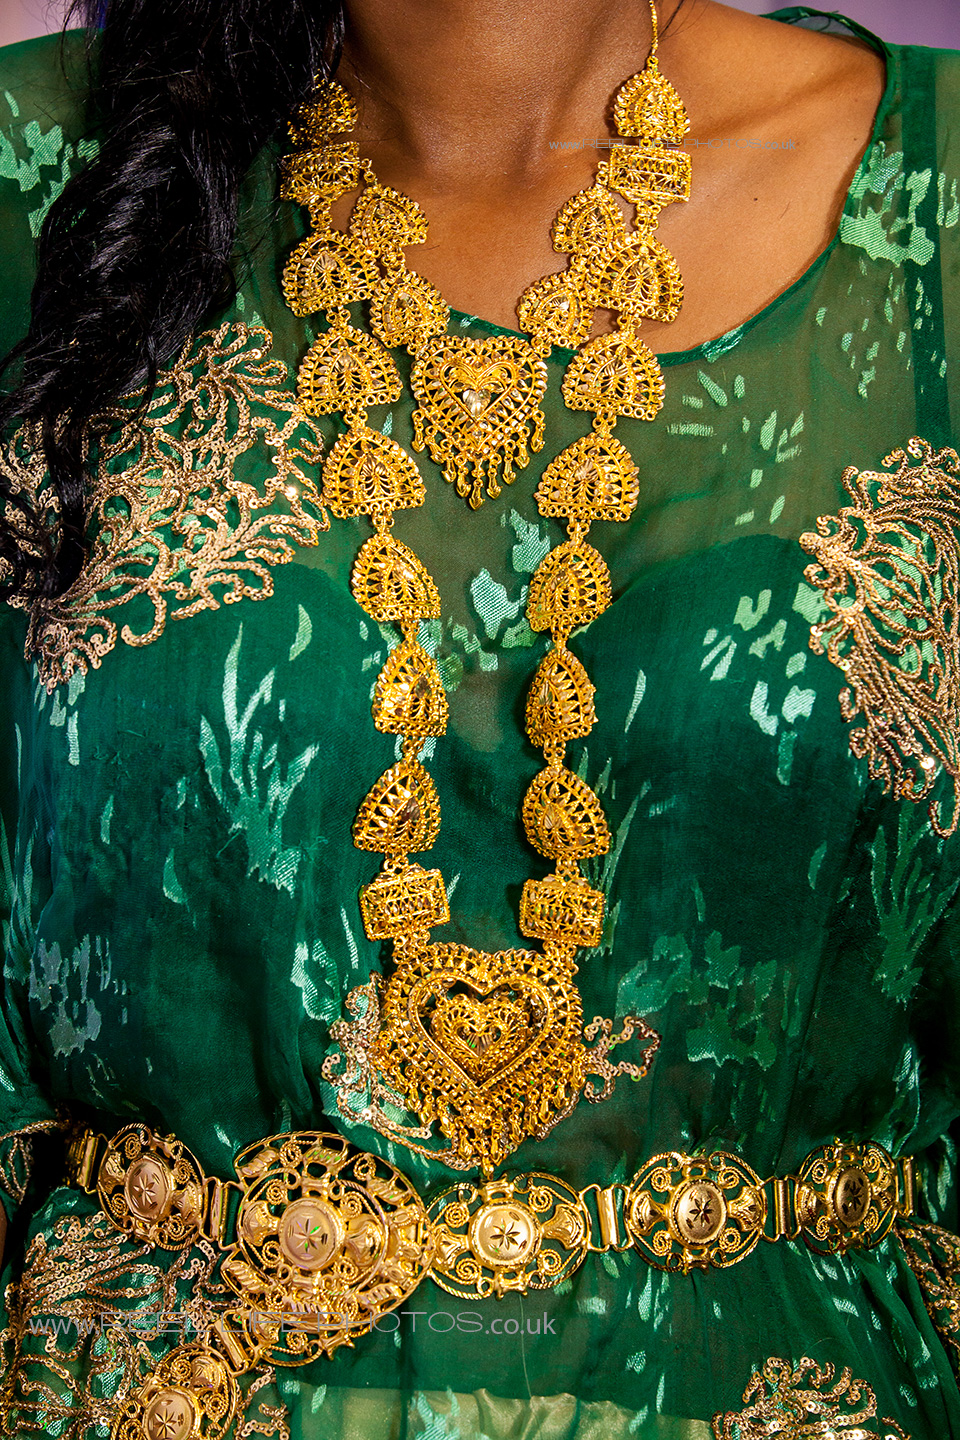 Somali gold wedding jewellery worn over green dirac wedding dress